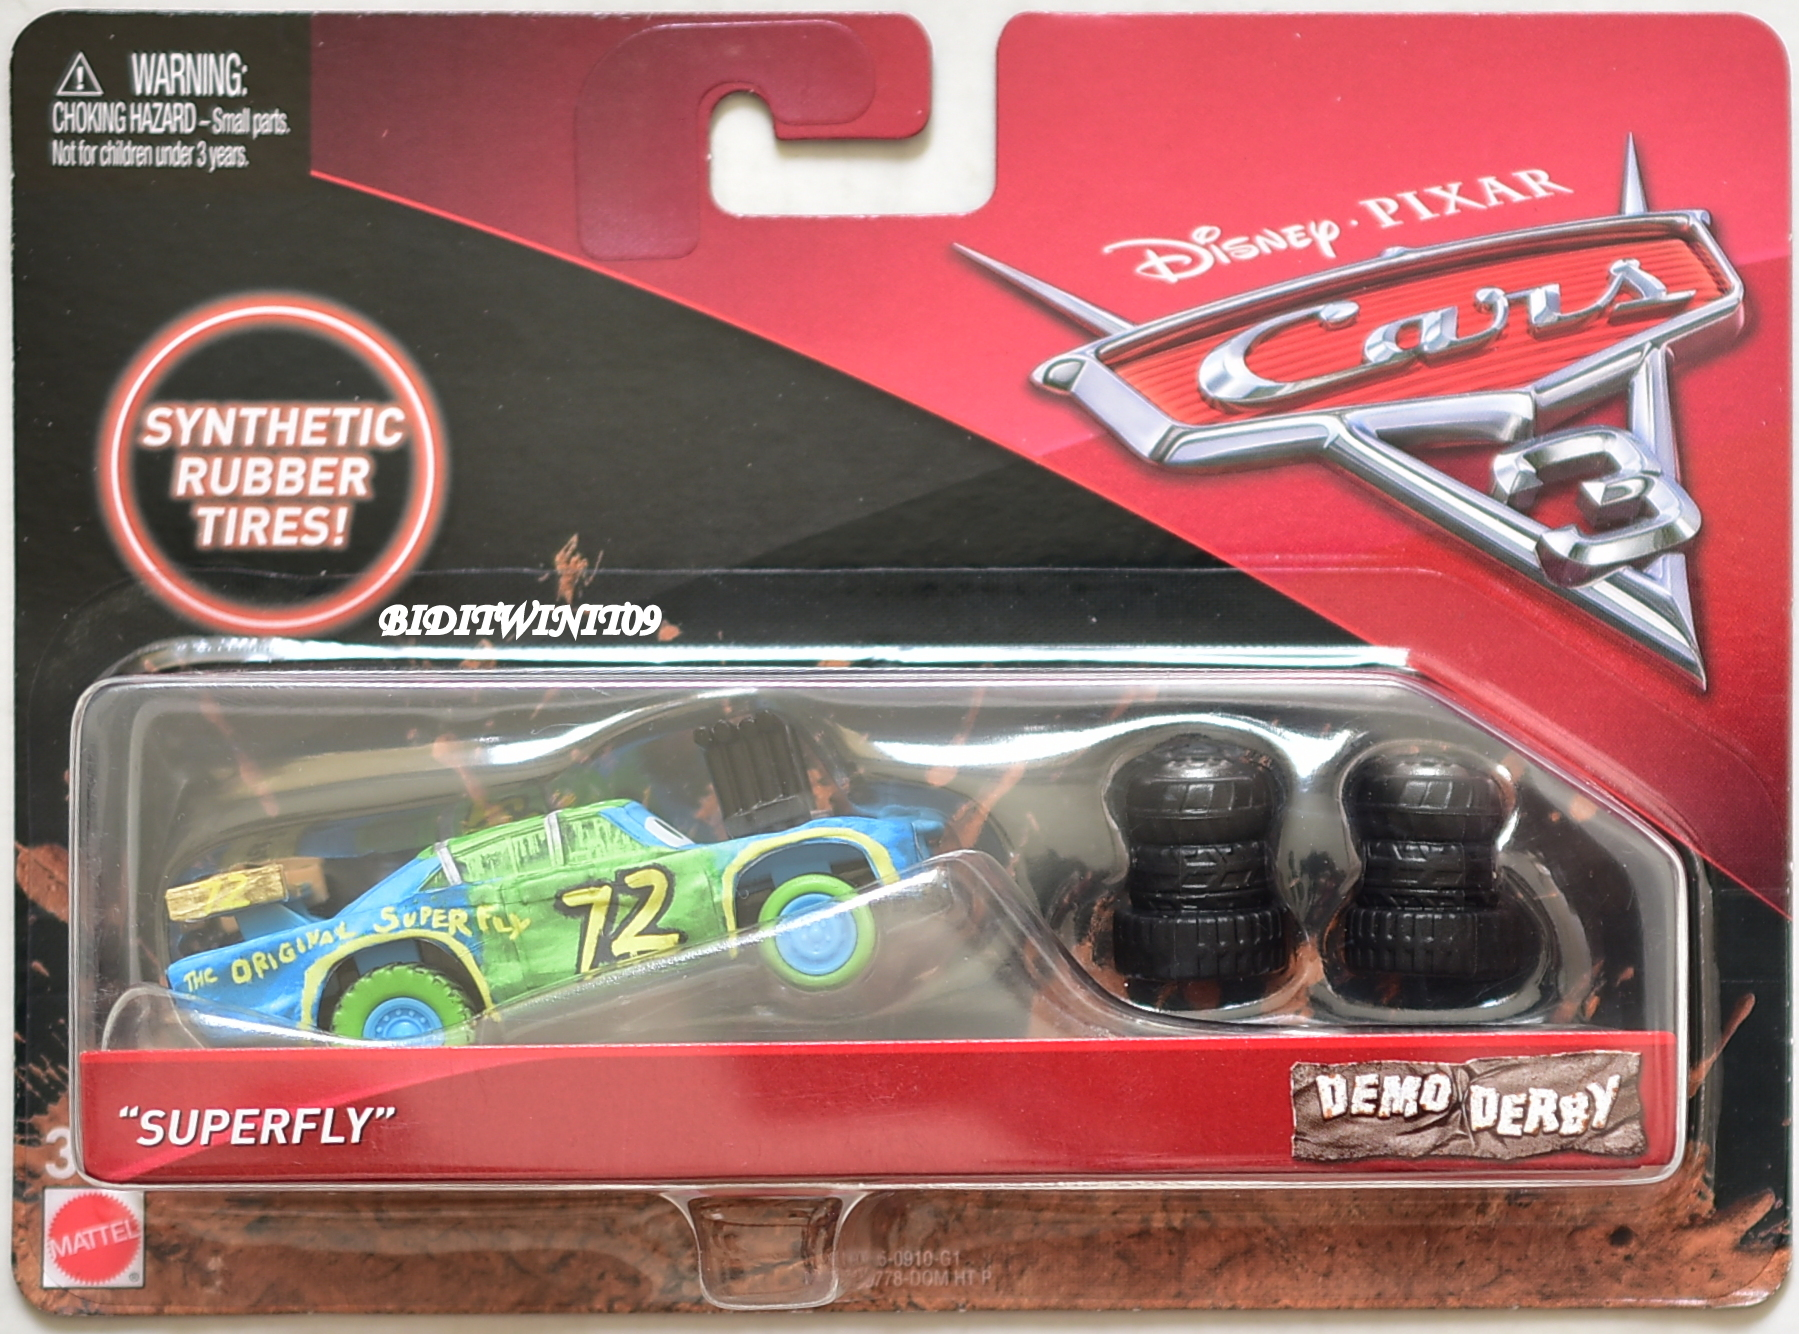 DISNEY PIXAR CARS 3 SYNTHETIC RUBBER TIRES SUPERFLY DEMO DERBY